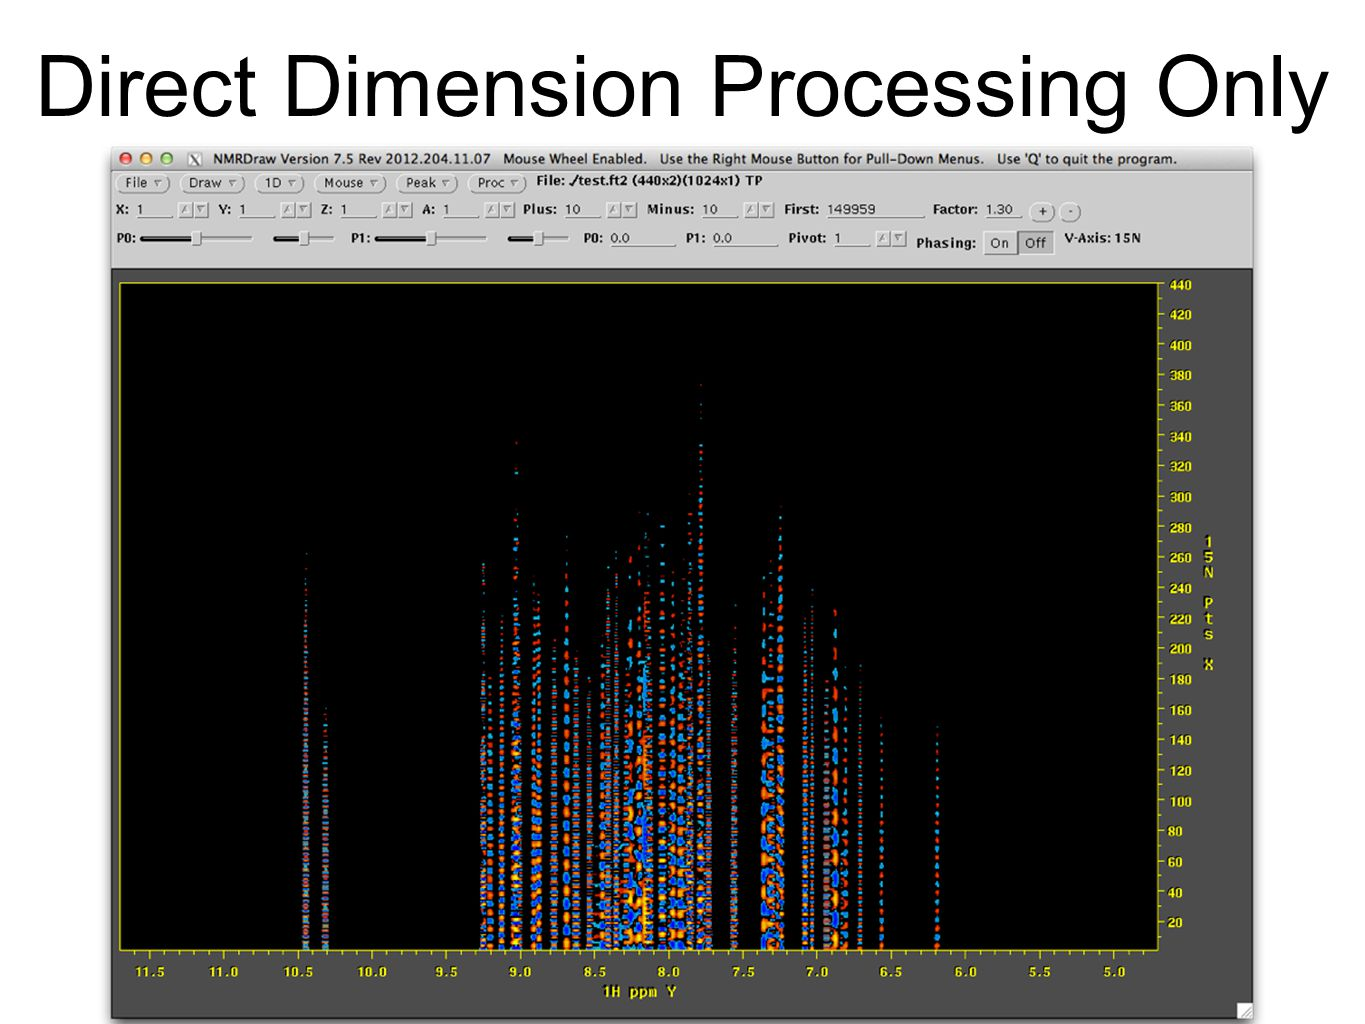 Direct Dimension Processing Only